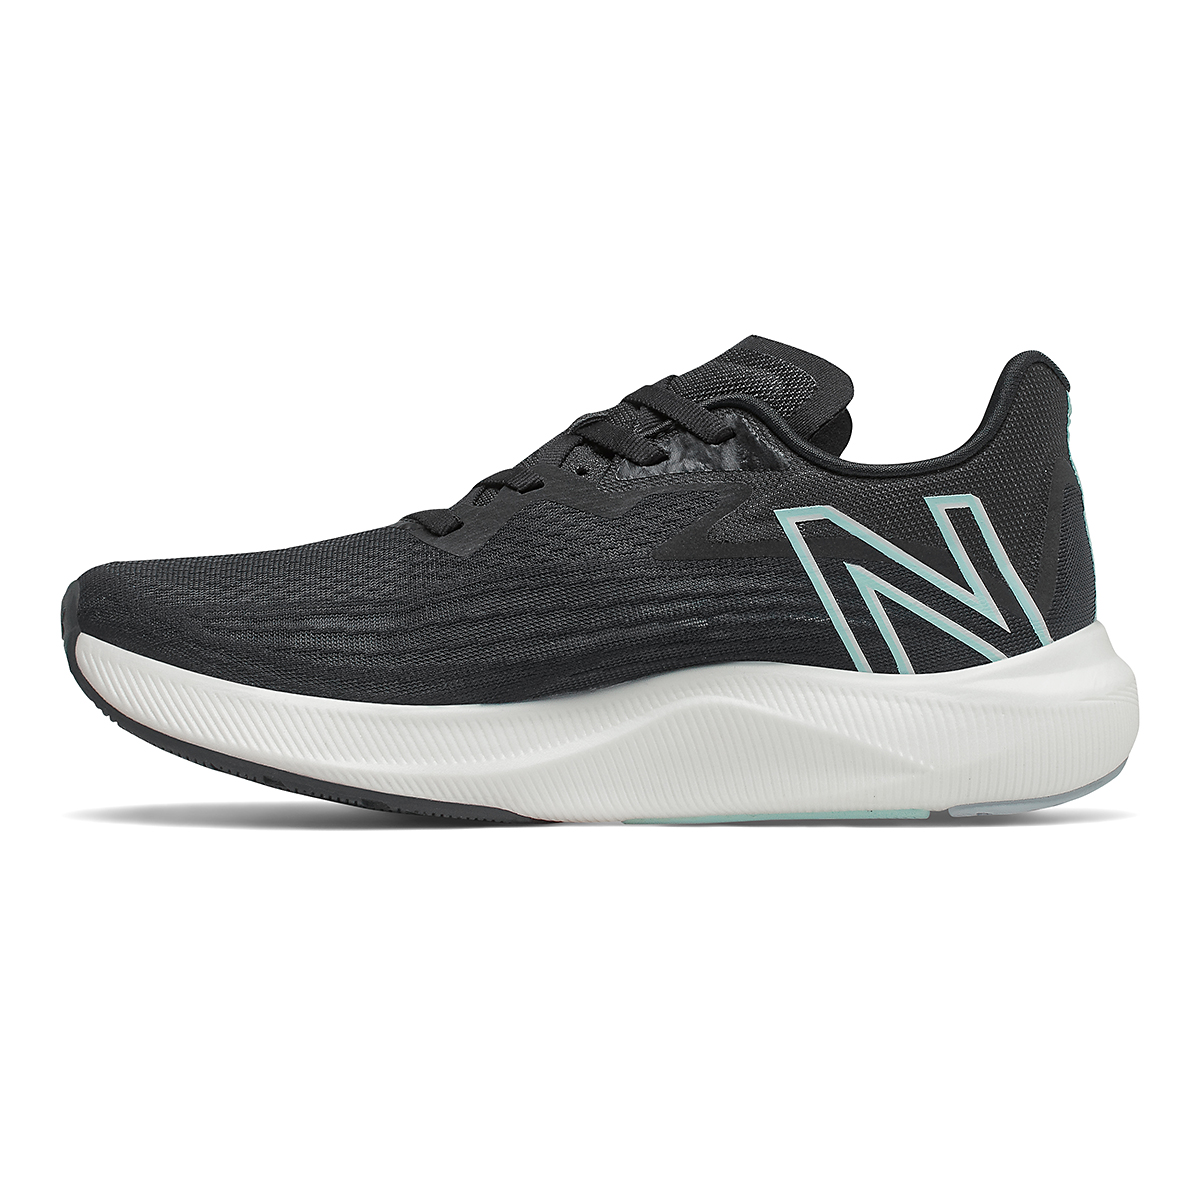 Women's New Balance Fuelcell Rebel V2 Running Shoe - Color: Black/White Mint/Citrus Punch - Size: 5 - Width: Regular, Black/White Mint/Citrus Punch, large, image 2